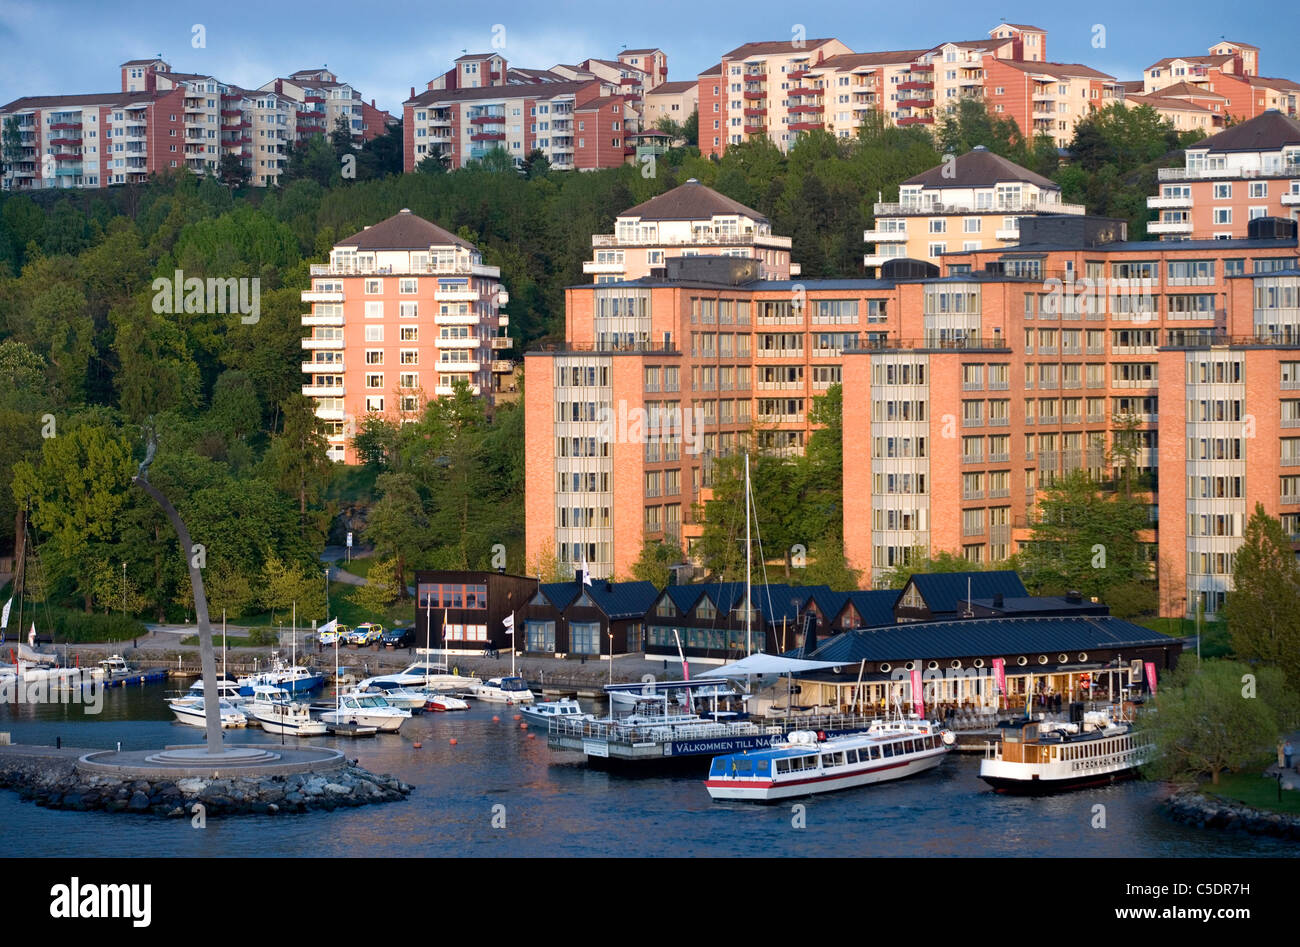 Apartment buildings with moored boats in foreground at Nacka Strand, Stockholm, Sweden Stock Photo